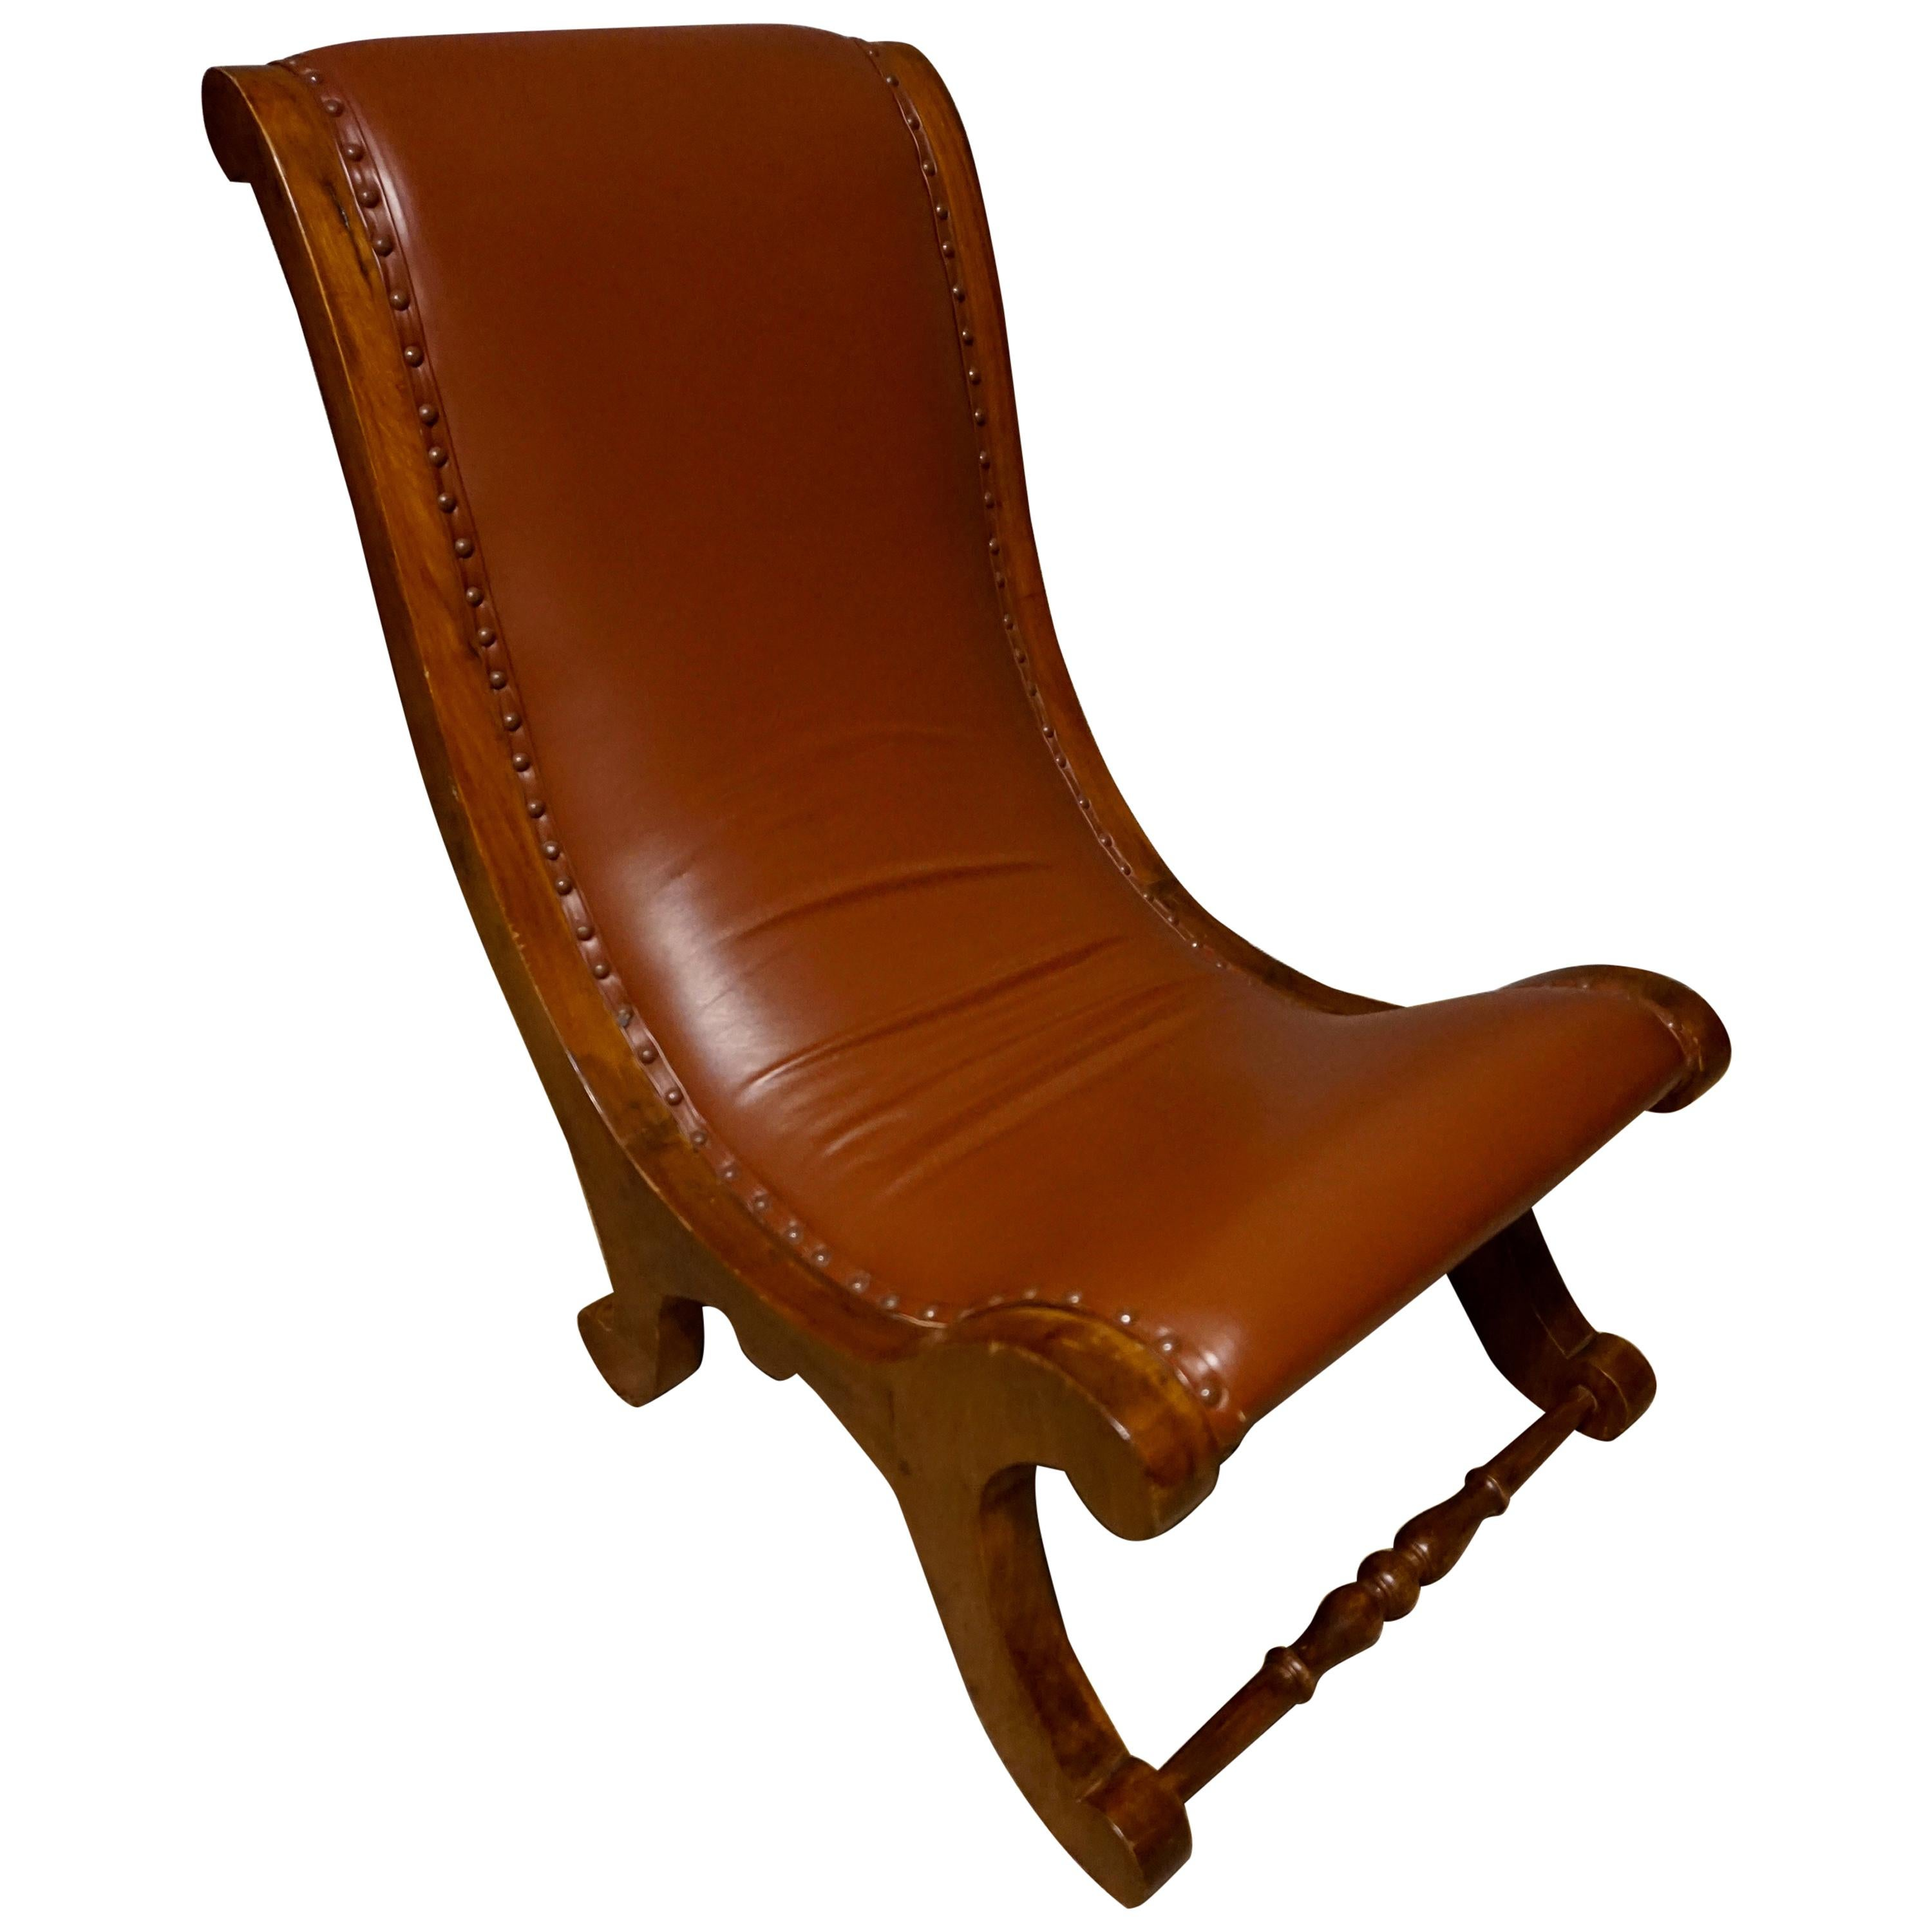 British Colonial Teak Slipper Chair With Leather Upholstery